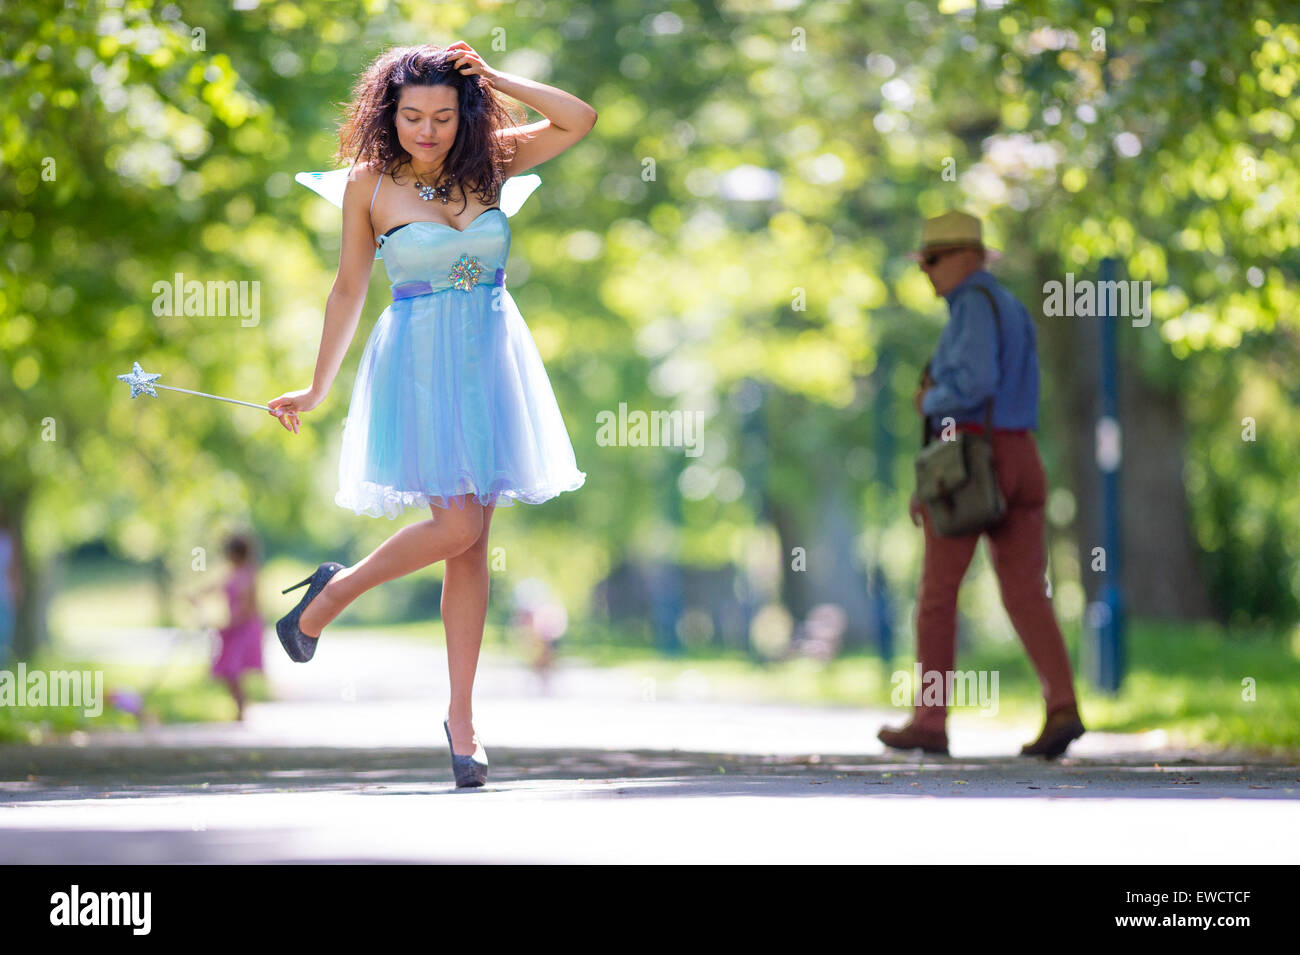 Aberystwyth, Wales, UK. 23rd June, 2015.  20 year old MONET MITCHELL tries out her fairy powers on a sunny afternoon - Stock Image